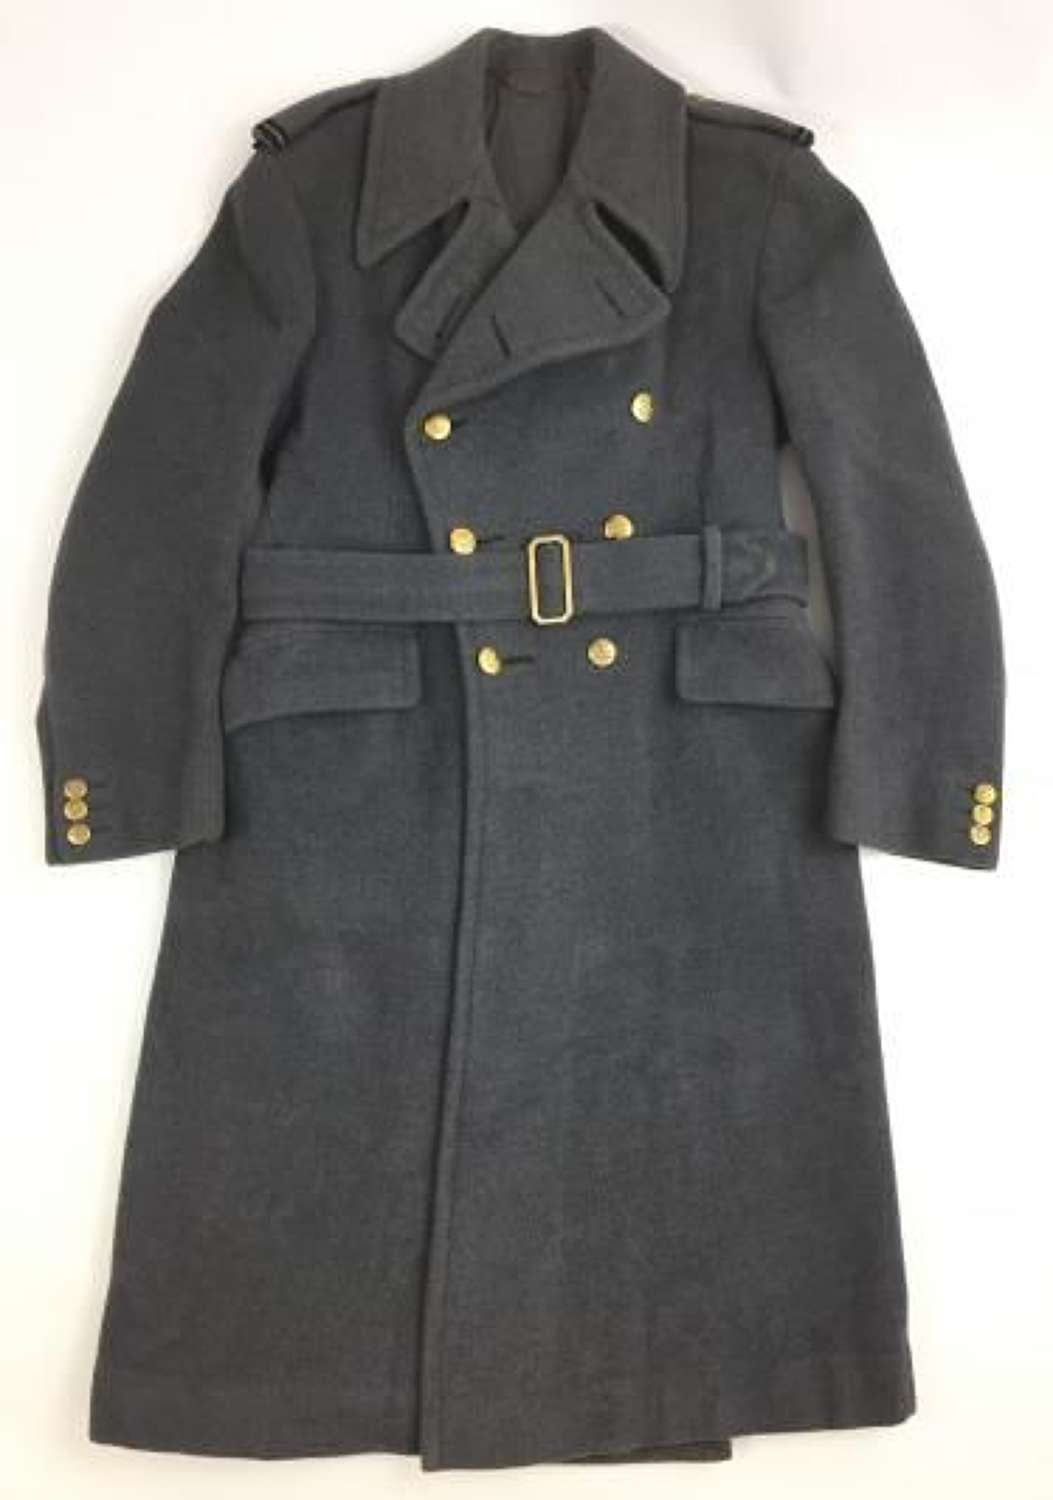 1943 Dated RAF Officers Crombie Overcoat